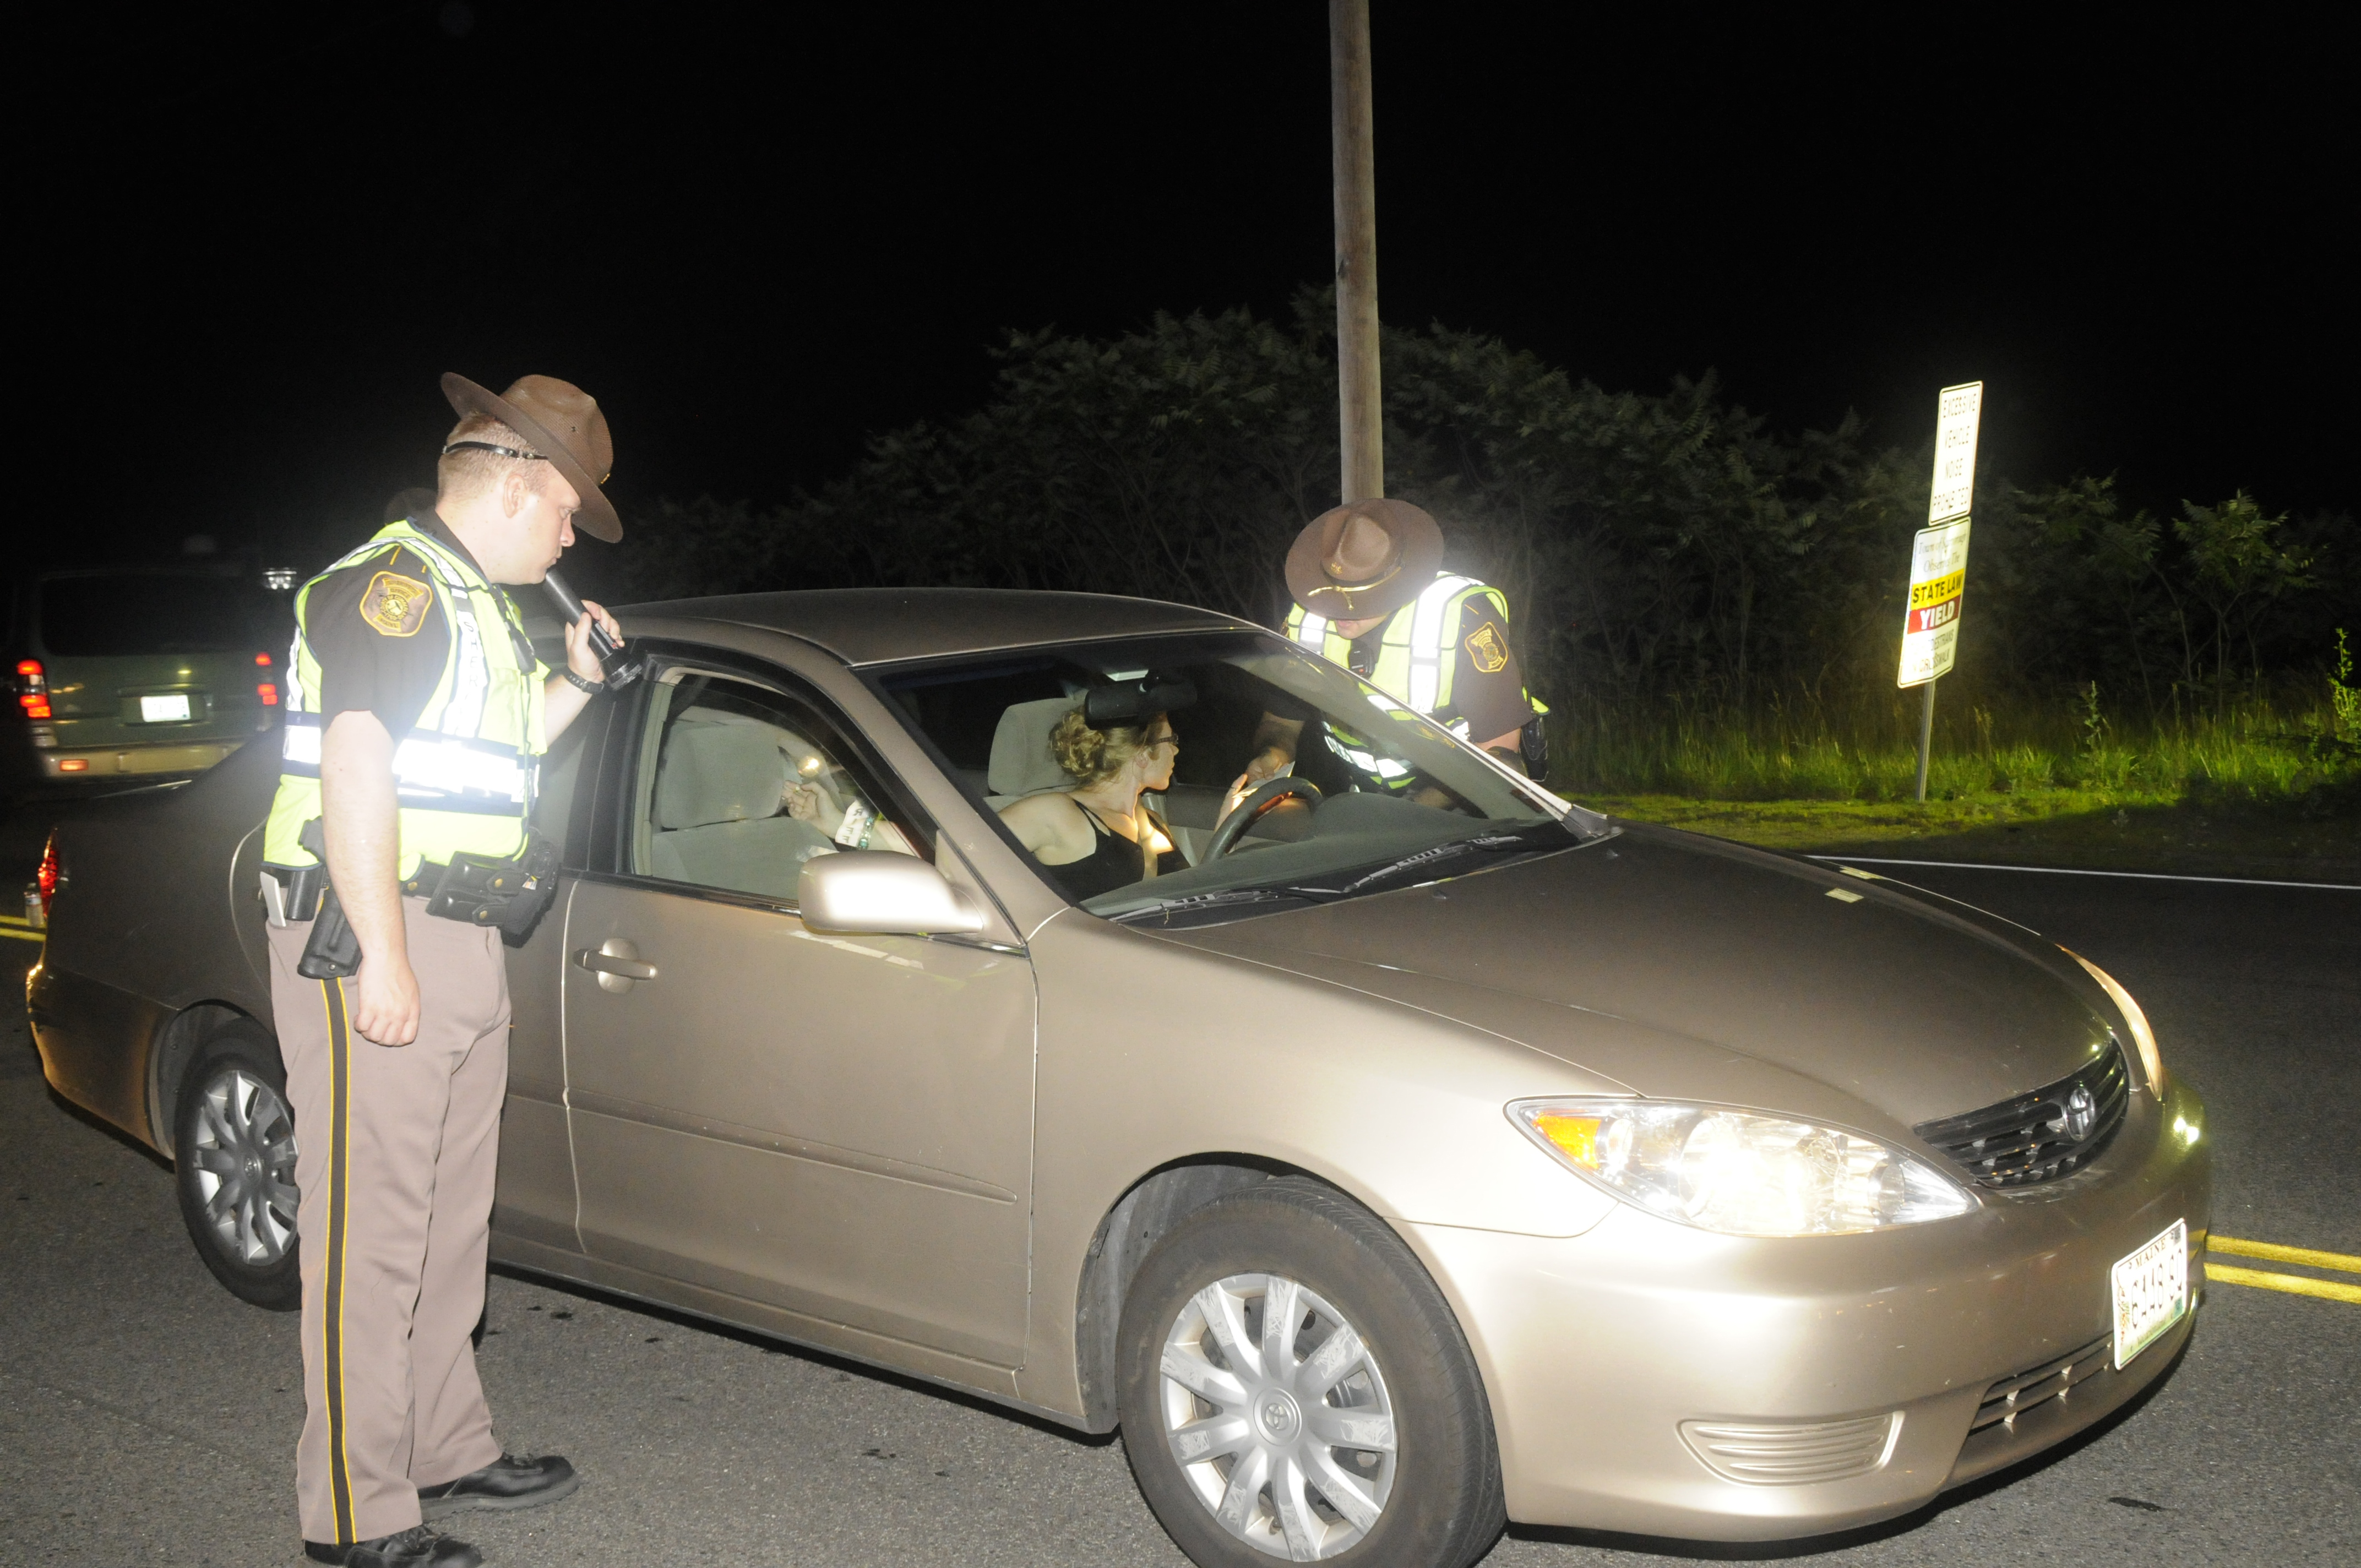 Two Sheriff's Deputies Conducting a Traffic Stop